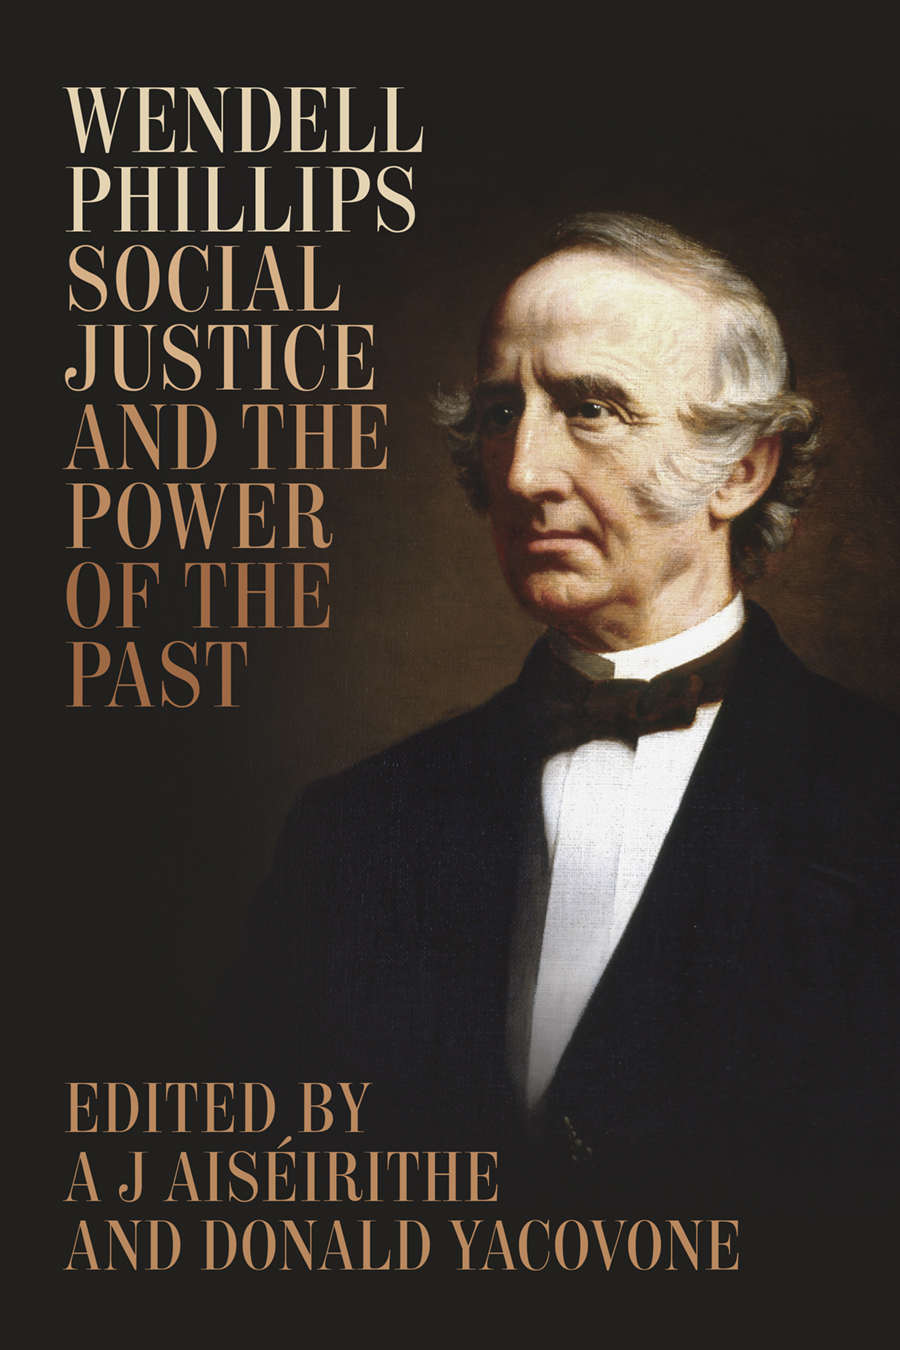 """'Here Labor Never Forgives': Wendell Phillips, Labor Reform, and Electoral Politics, 1868-1883"" in A J Aiséirithe and Donald Yacovone, eds., ""Nothing but Freedom, Justice, and Truth"": Essays on the Meaning of Wendell Phillips (Baton Rouge, LA: Louisiana State University Press, 2016) -"